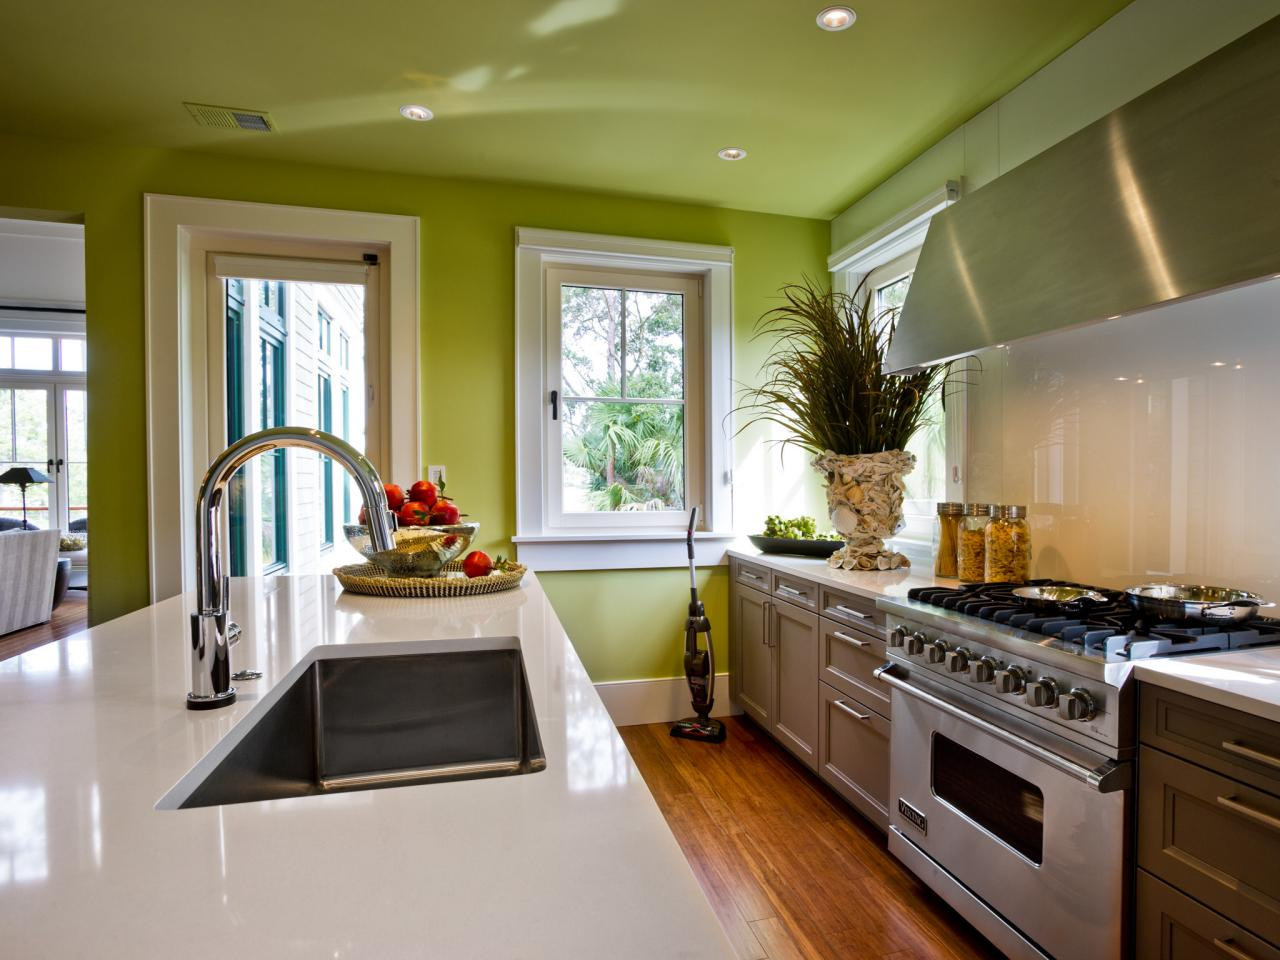 Paint colors for kitchens pictures ideas tips from for Best kitchen paint colors